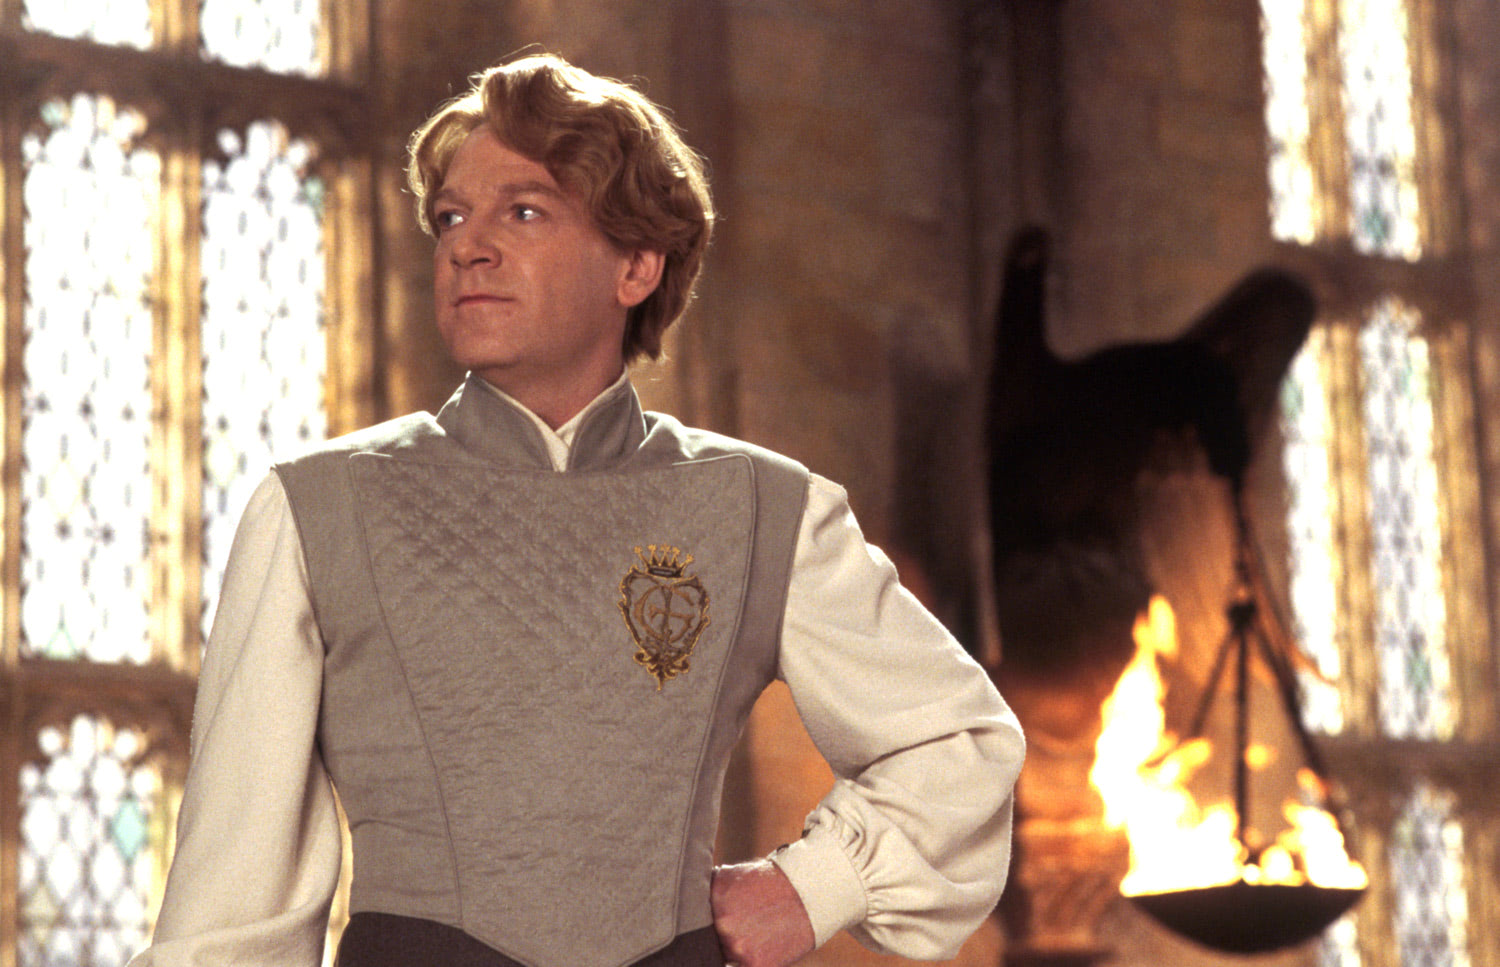 Gilderoy Lockhart at the Dueling Club